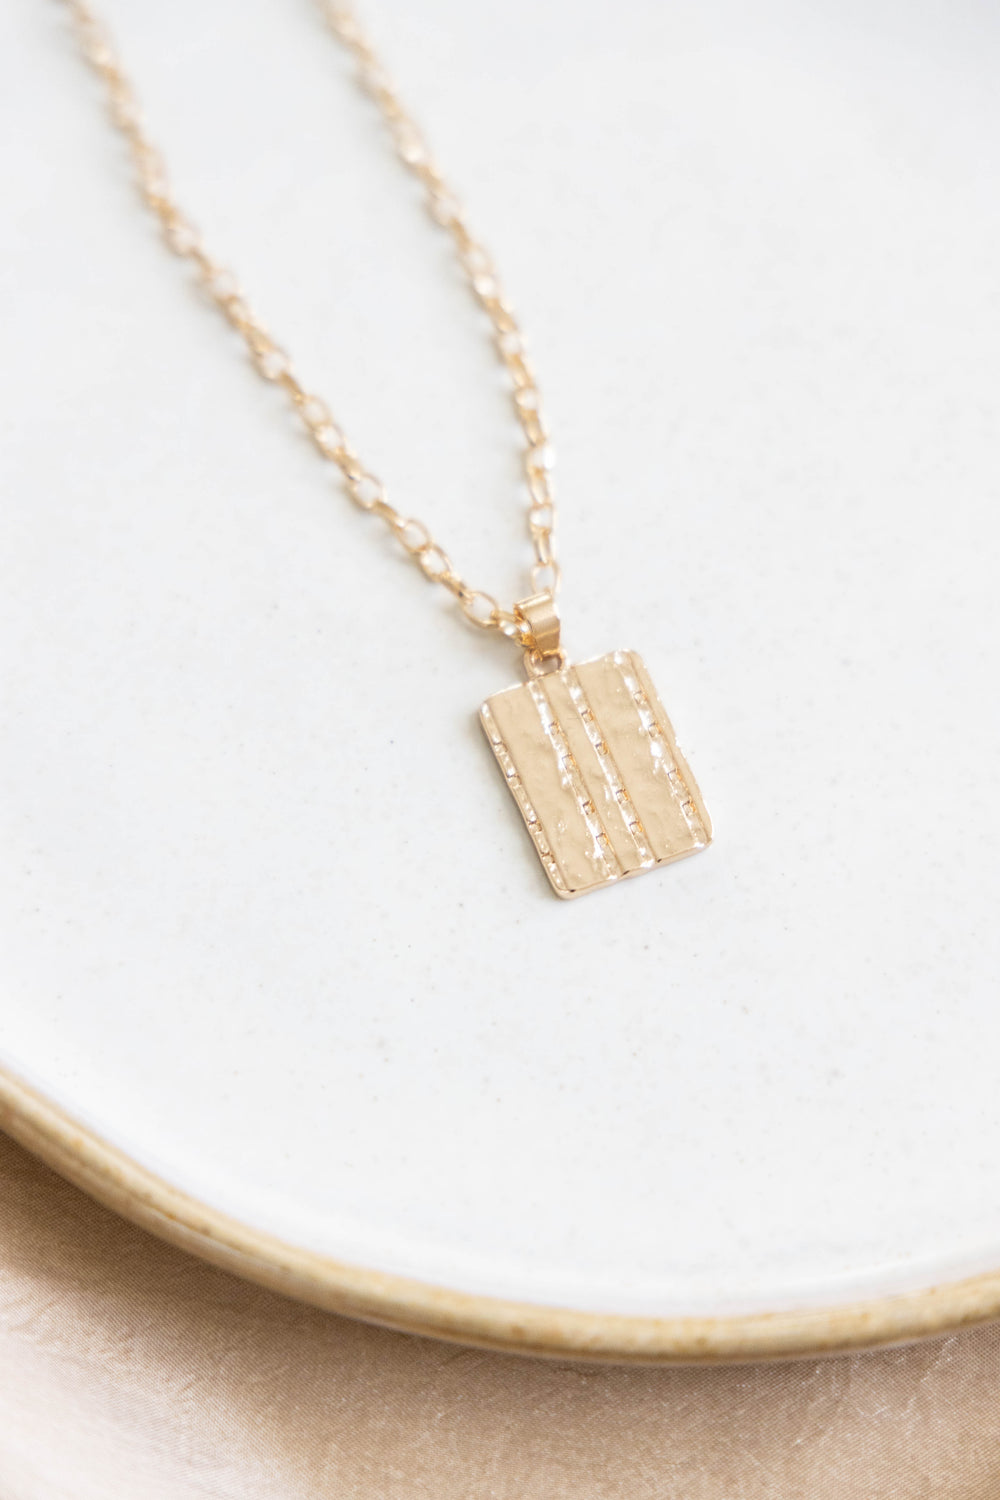 Gold necklace with rectangle pendant on white background